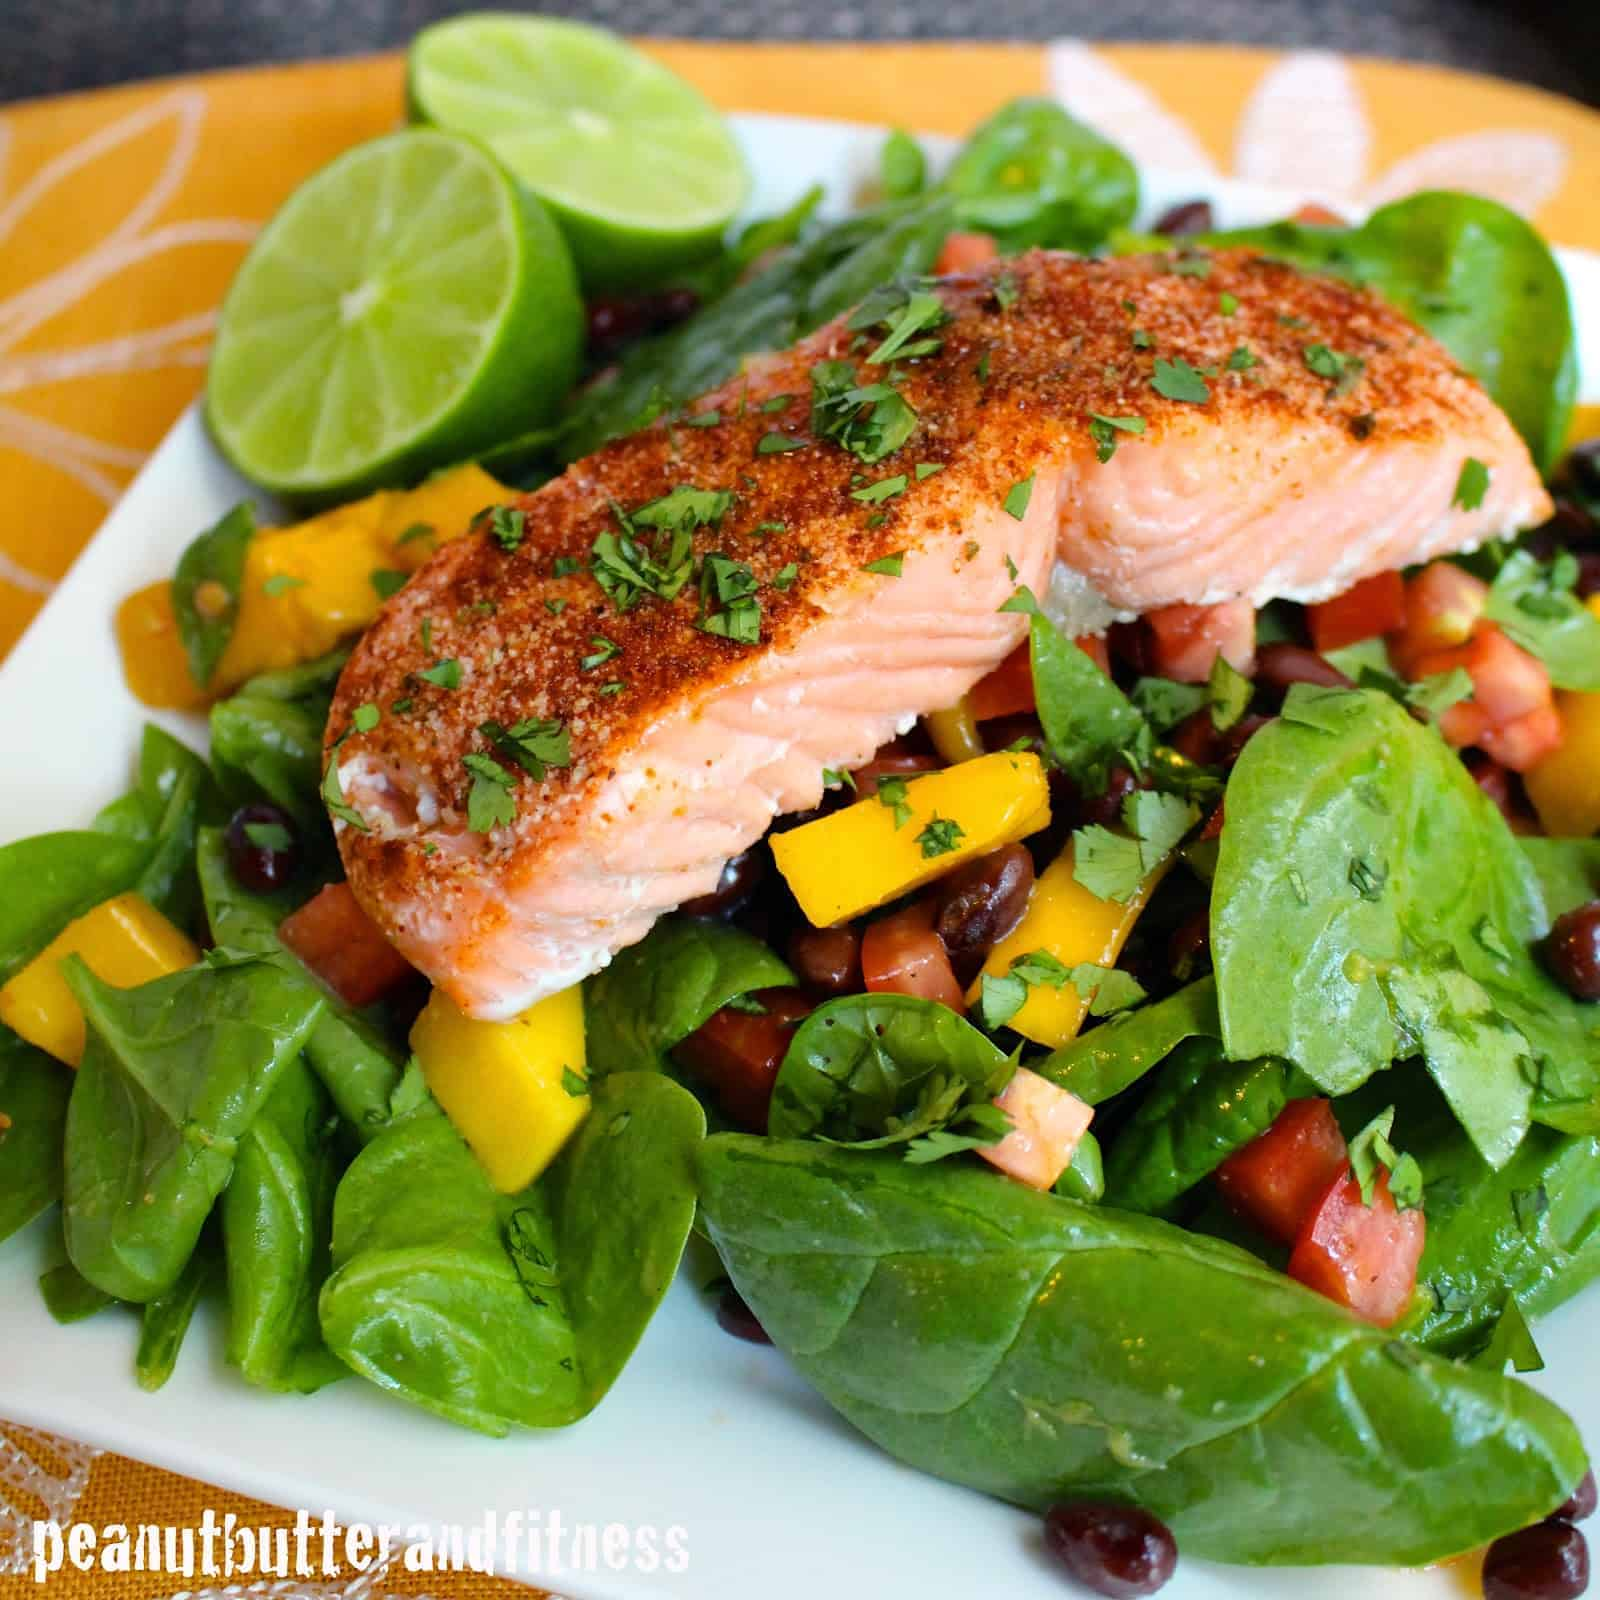 Chili Lime Salmon Salad (and Meal Prep Ideas!) - Peanut ...